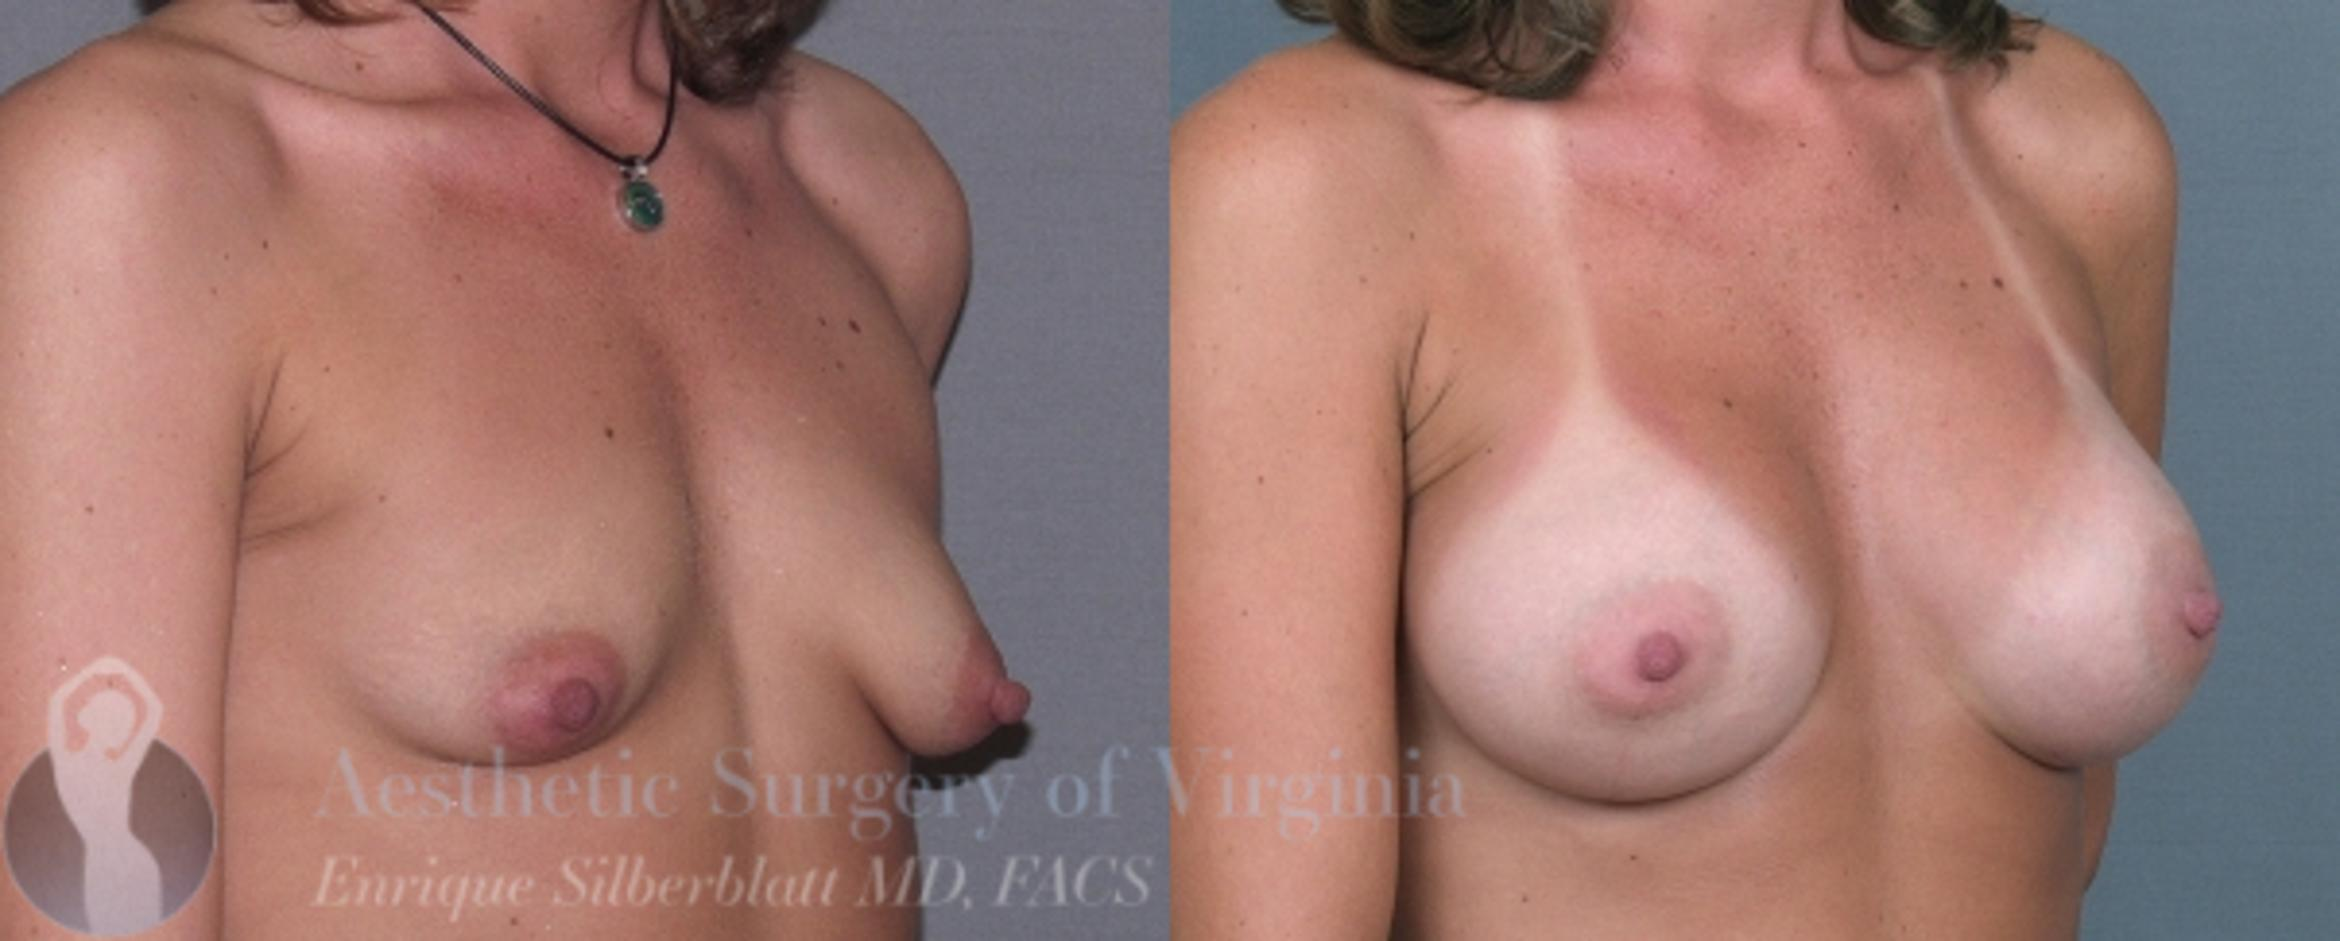 Breast Augmentation Case 4 Before & After View #3 | Roanoke, VA | Aesthetic Surgery of Virginia: Enrique Silberblatt, MD